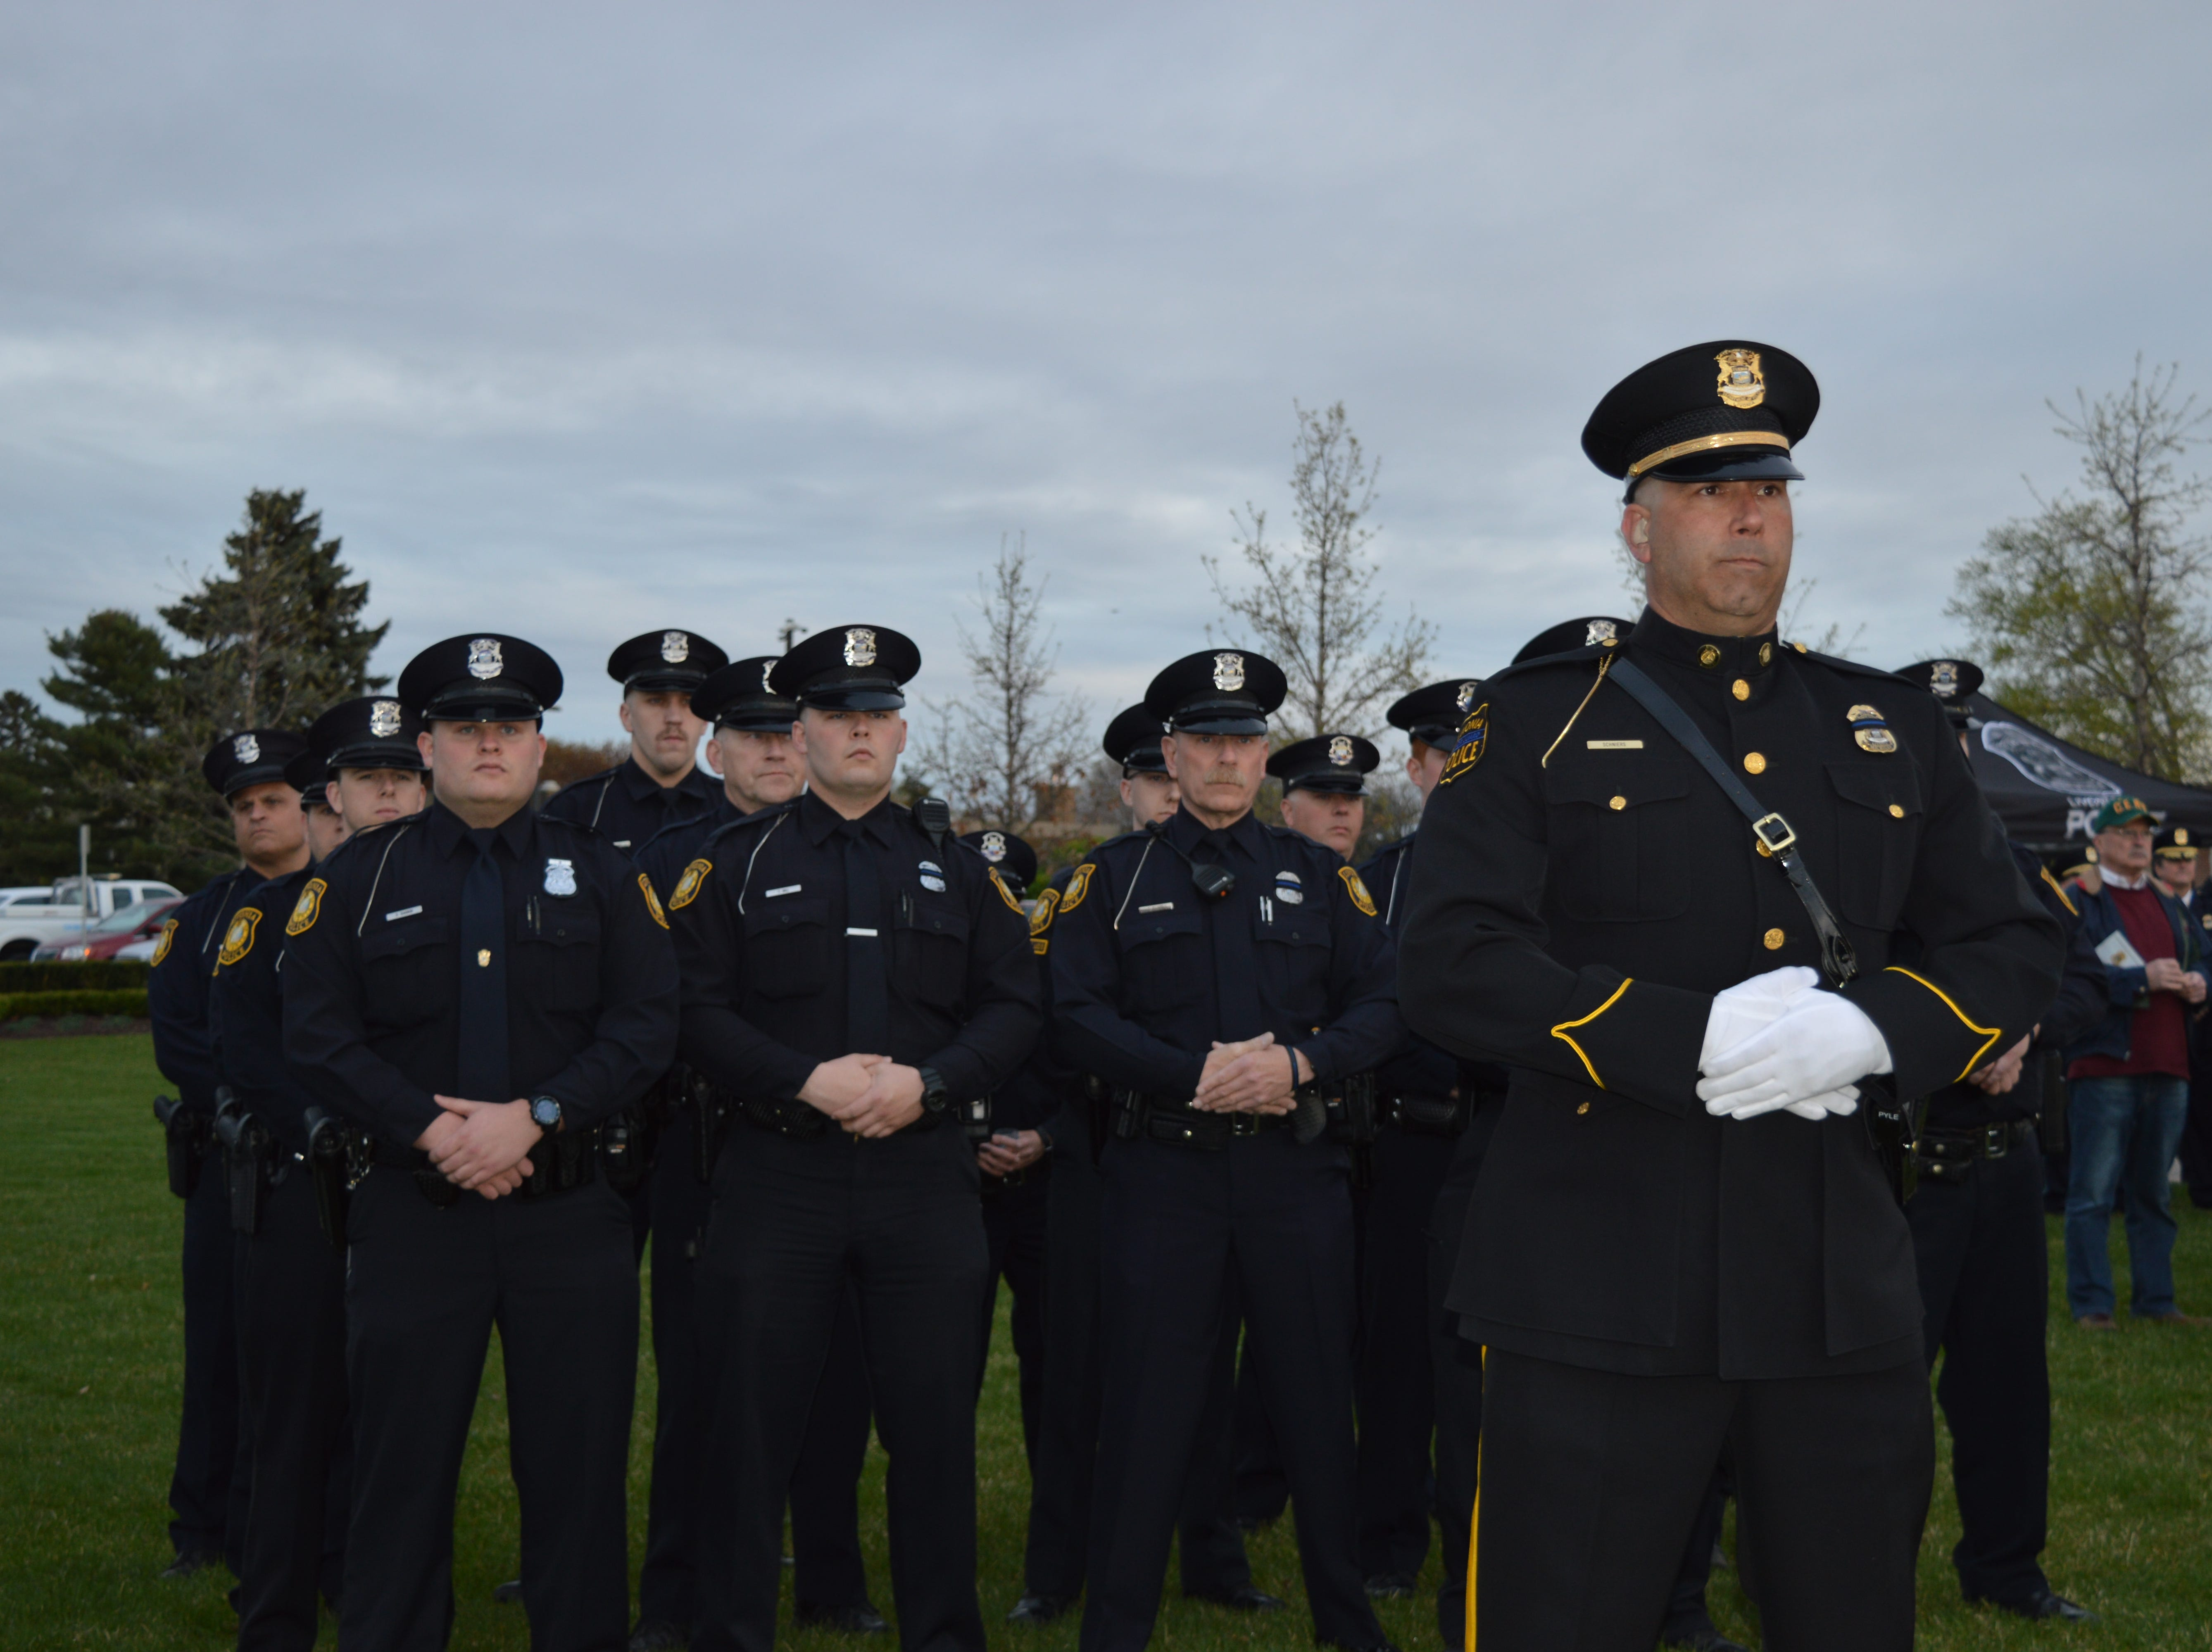 Police officers joined community members in honoring fallen officers at Larry Nehasil Park during the fifth annual Livonia Police Memorial Ceremony on May 7, 2019.